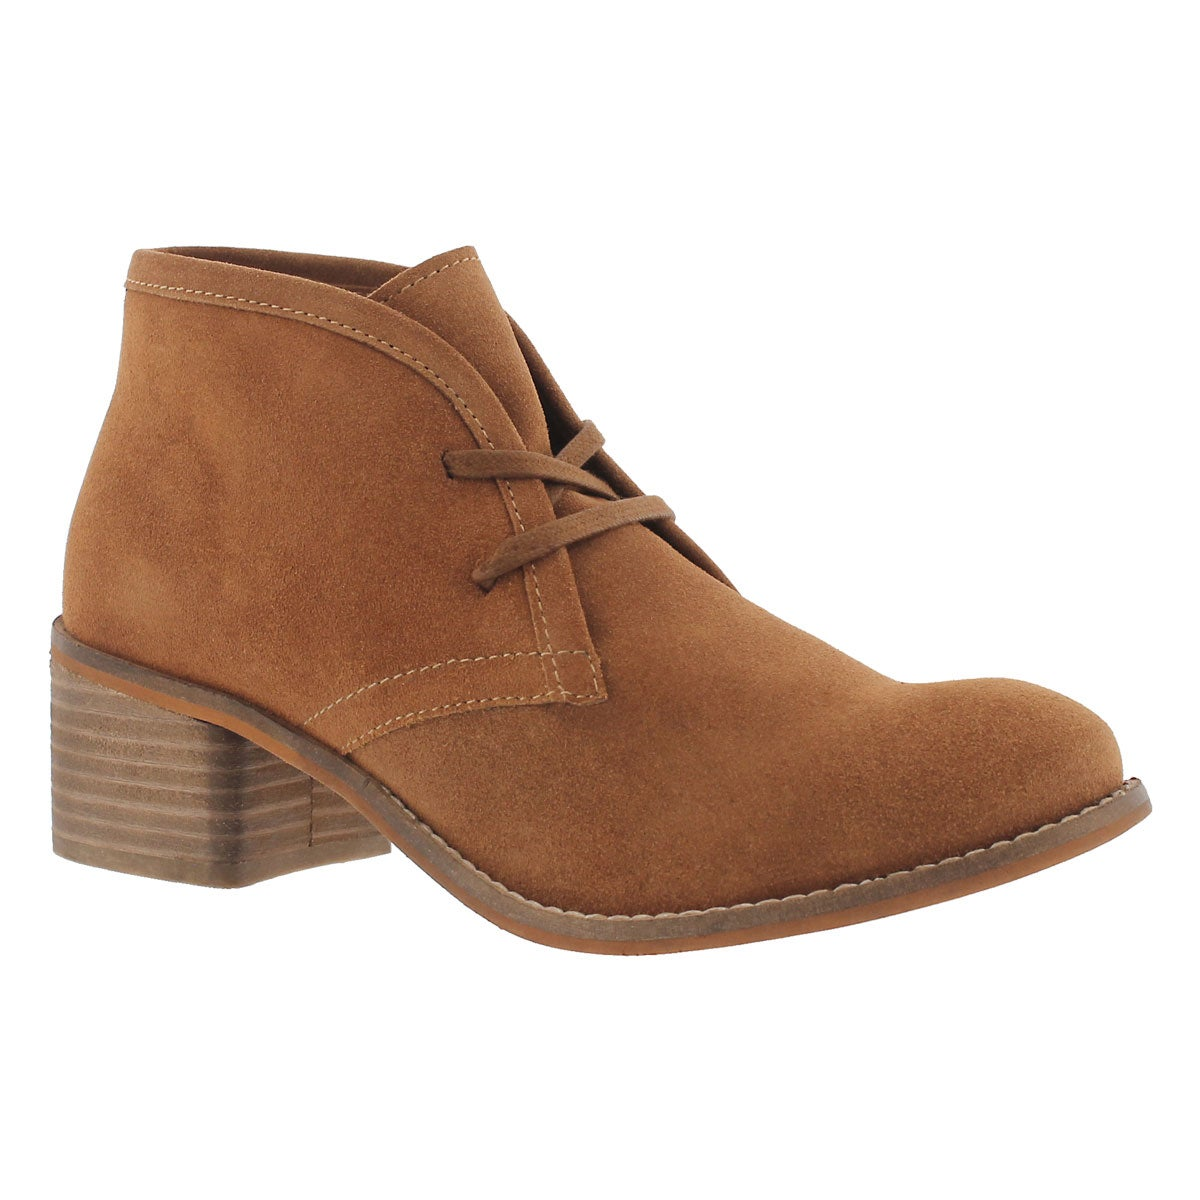 Women's FIONA dark tan lace up casual booties